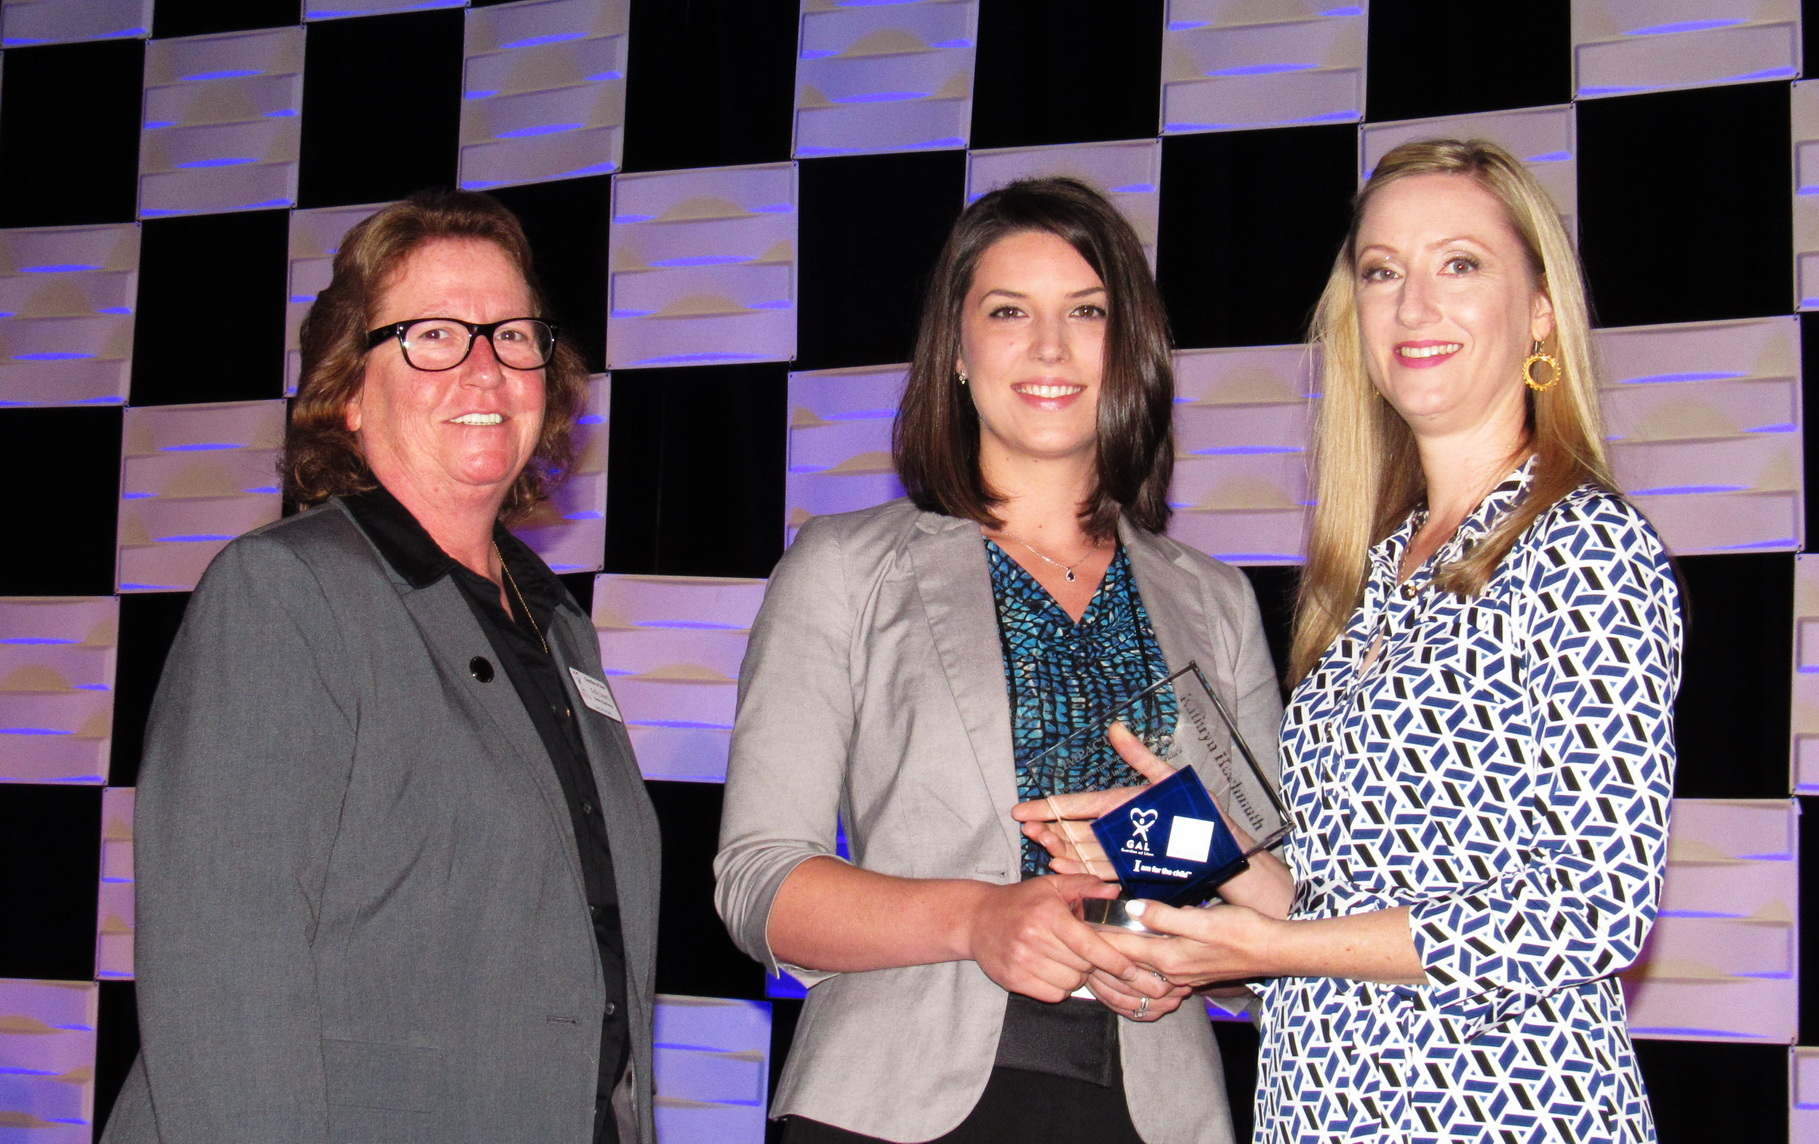 Kathryn Hochmuth Receives the GAL Impact Award - Named in